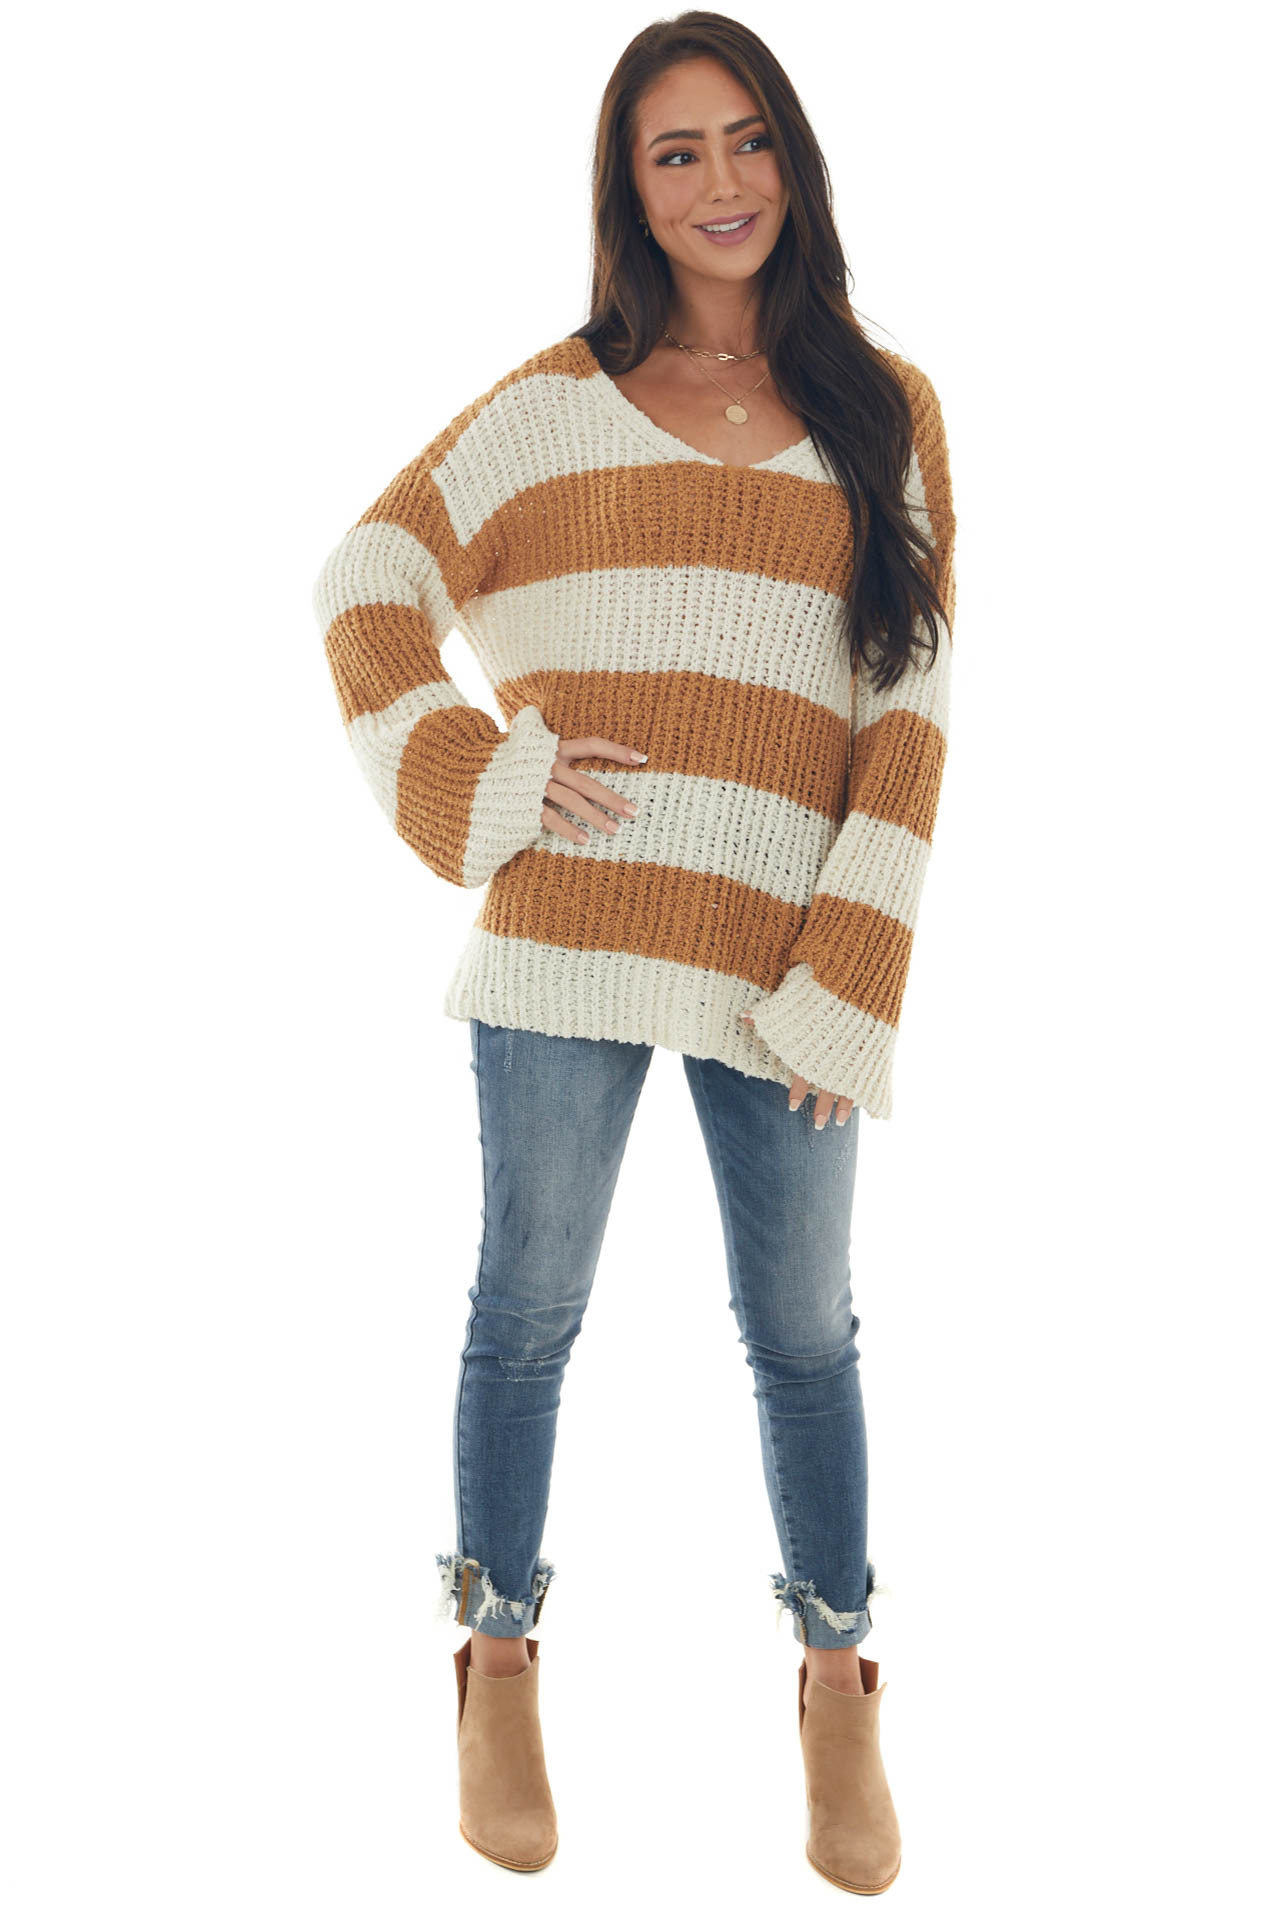 Caramel and Cream Striped Soft Knit Sweater